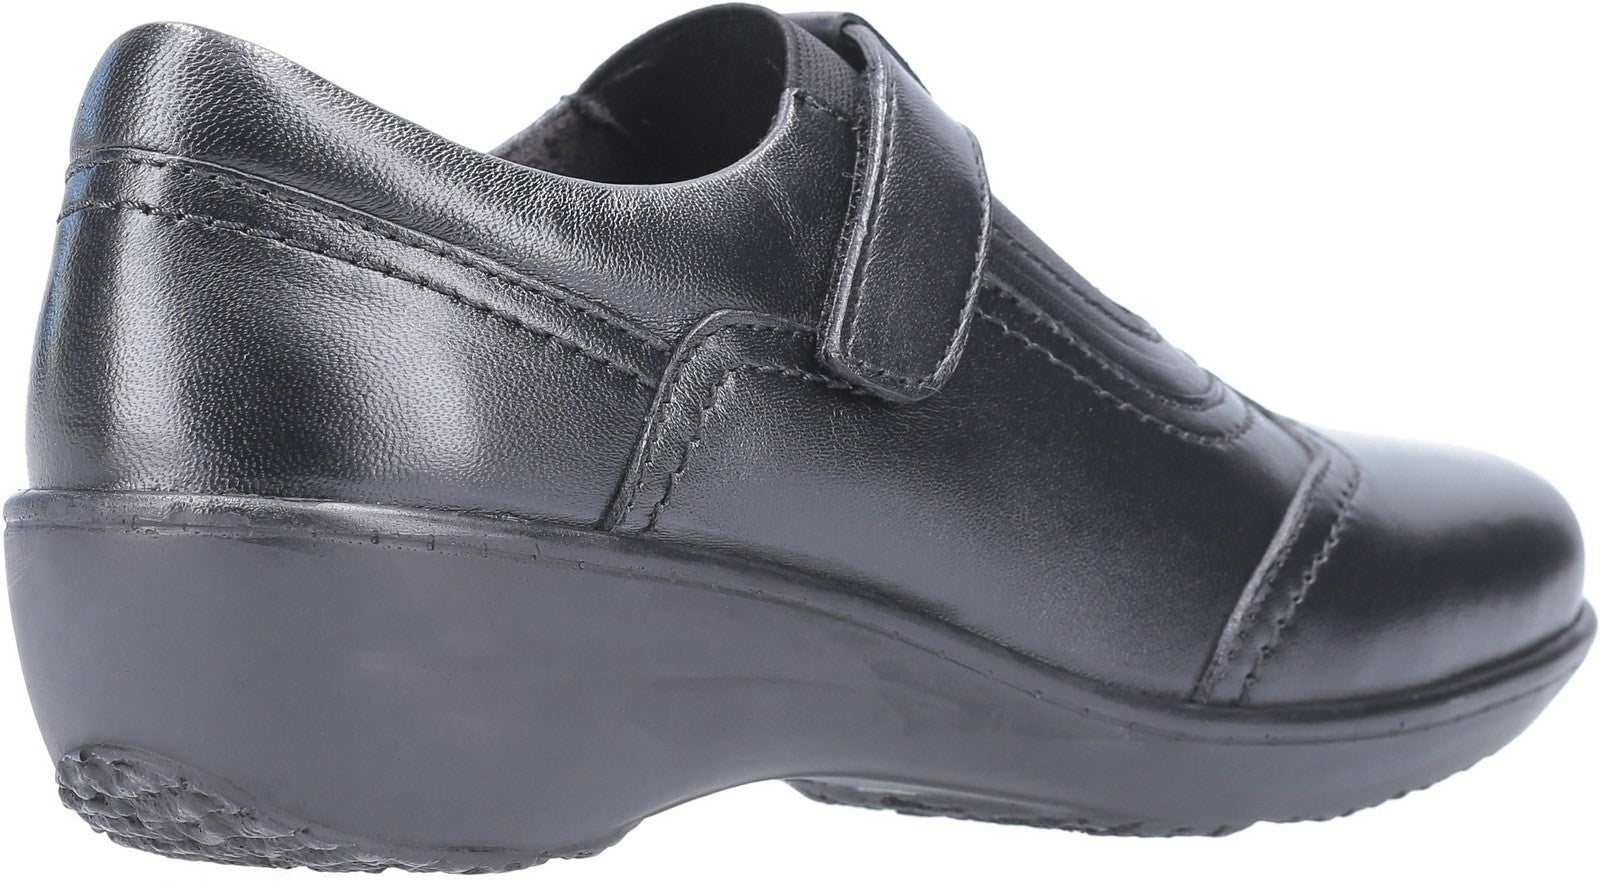 Fleet & Foster Women's Ethel Touch Fasten Shoe Black 29297-49587